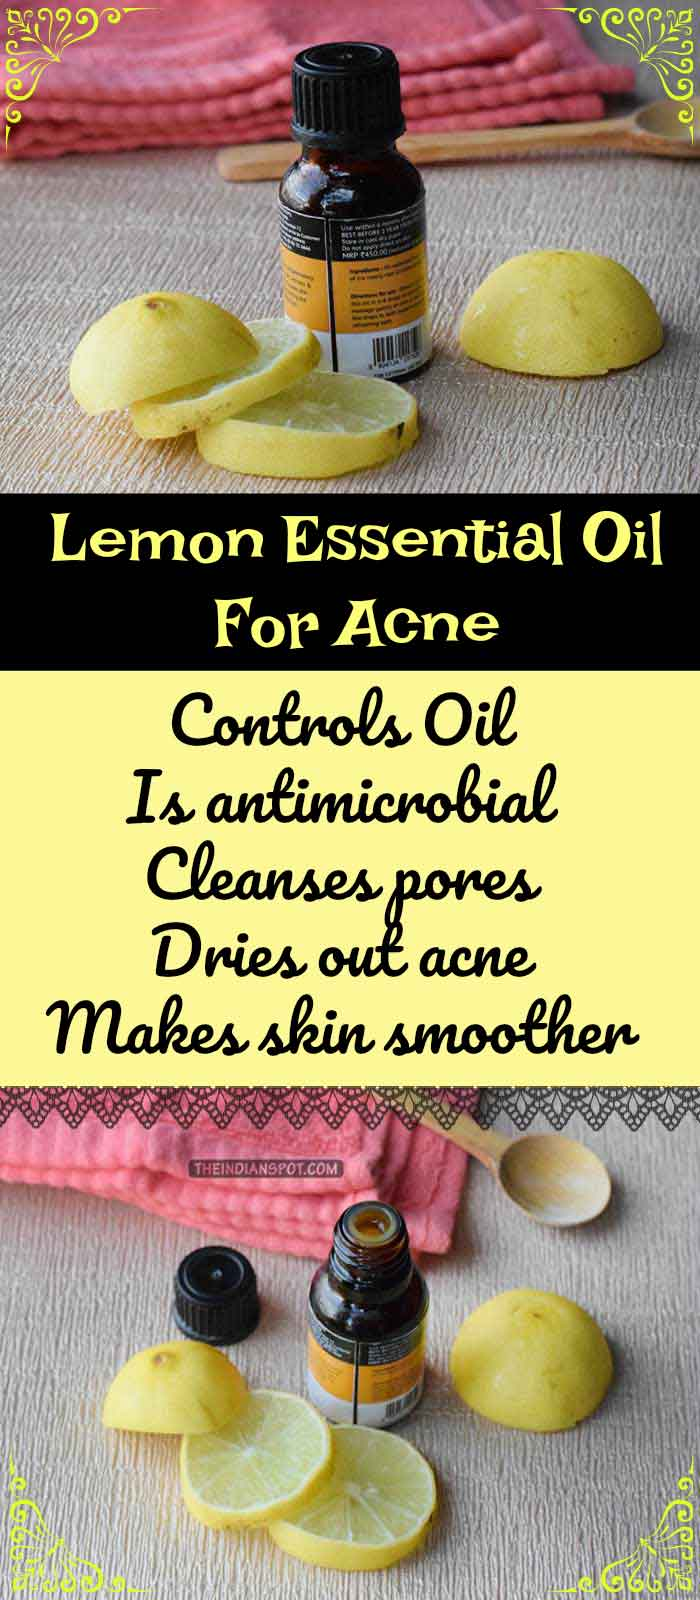 LEMON ESSENTIAL OIL FOR ACNE